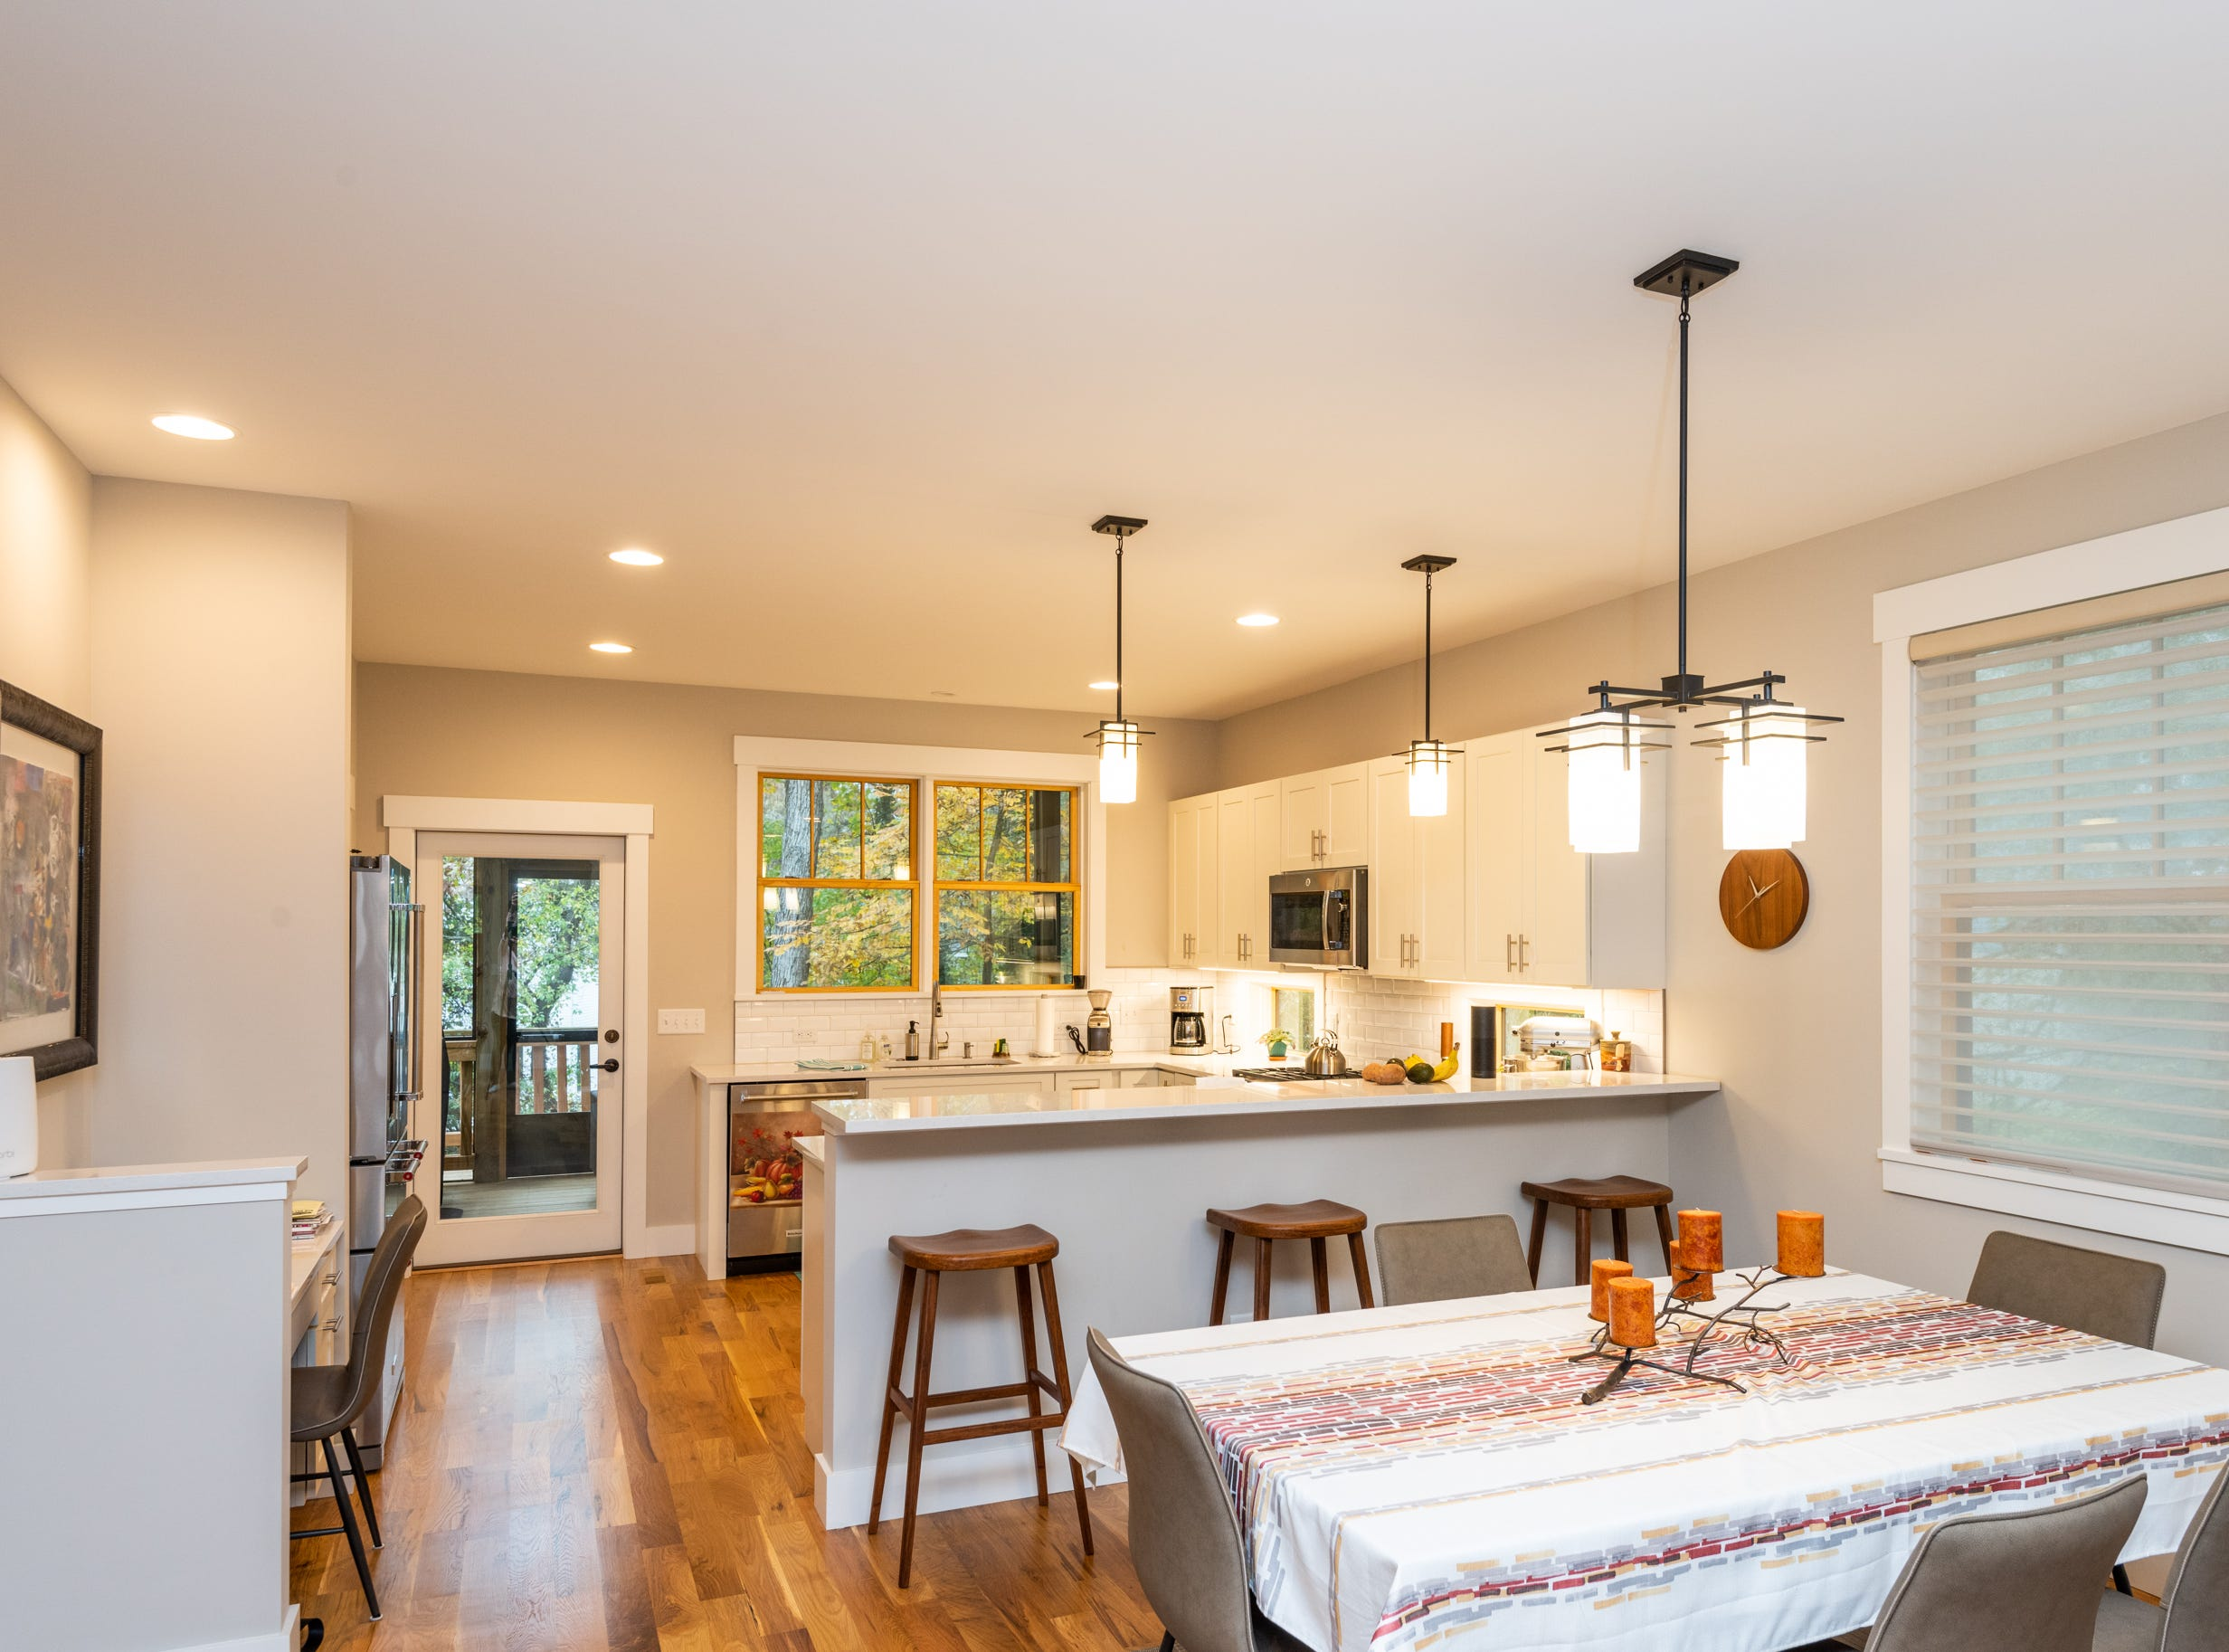 The first floor's open plan combines living room, dining area and kitchen.